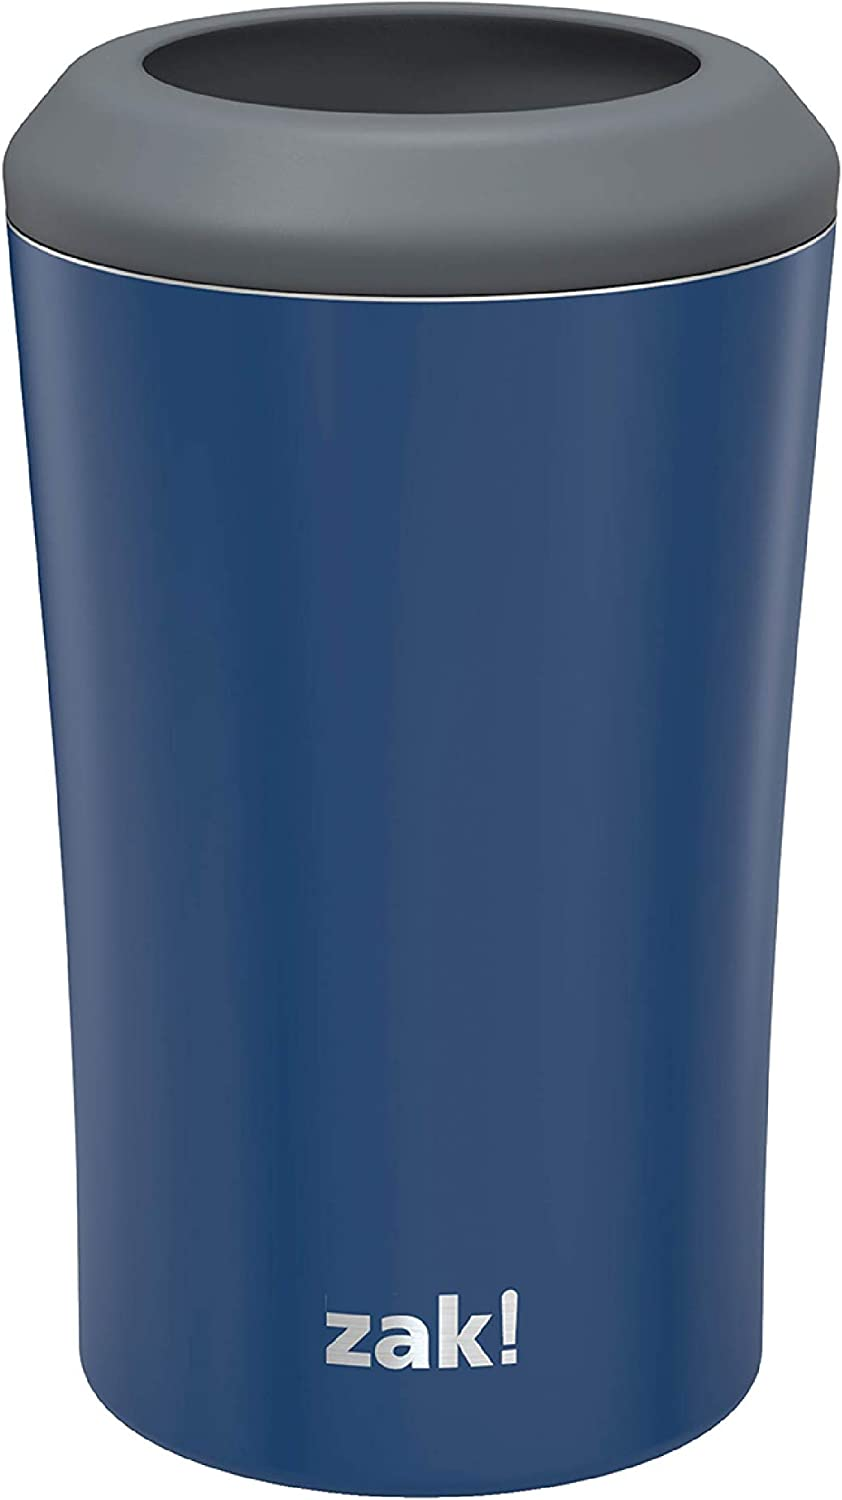 Zak Designs Durable 18/8 Stainless Steel with Vacuum Insulated Can and Bottle Cooler, Great for Cold Drinks Stay Cold in Pool and Party (12oz, Indigo)